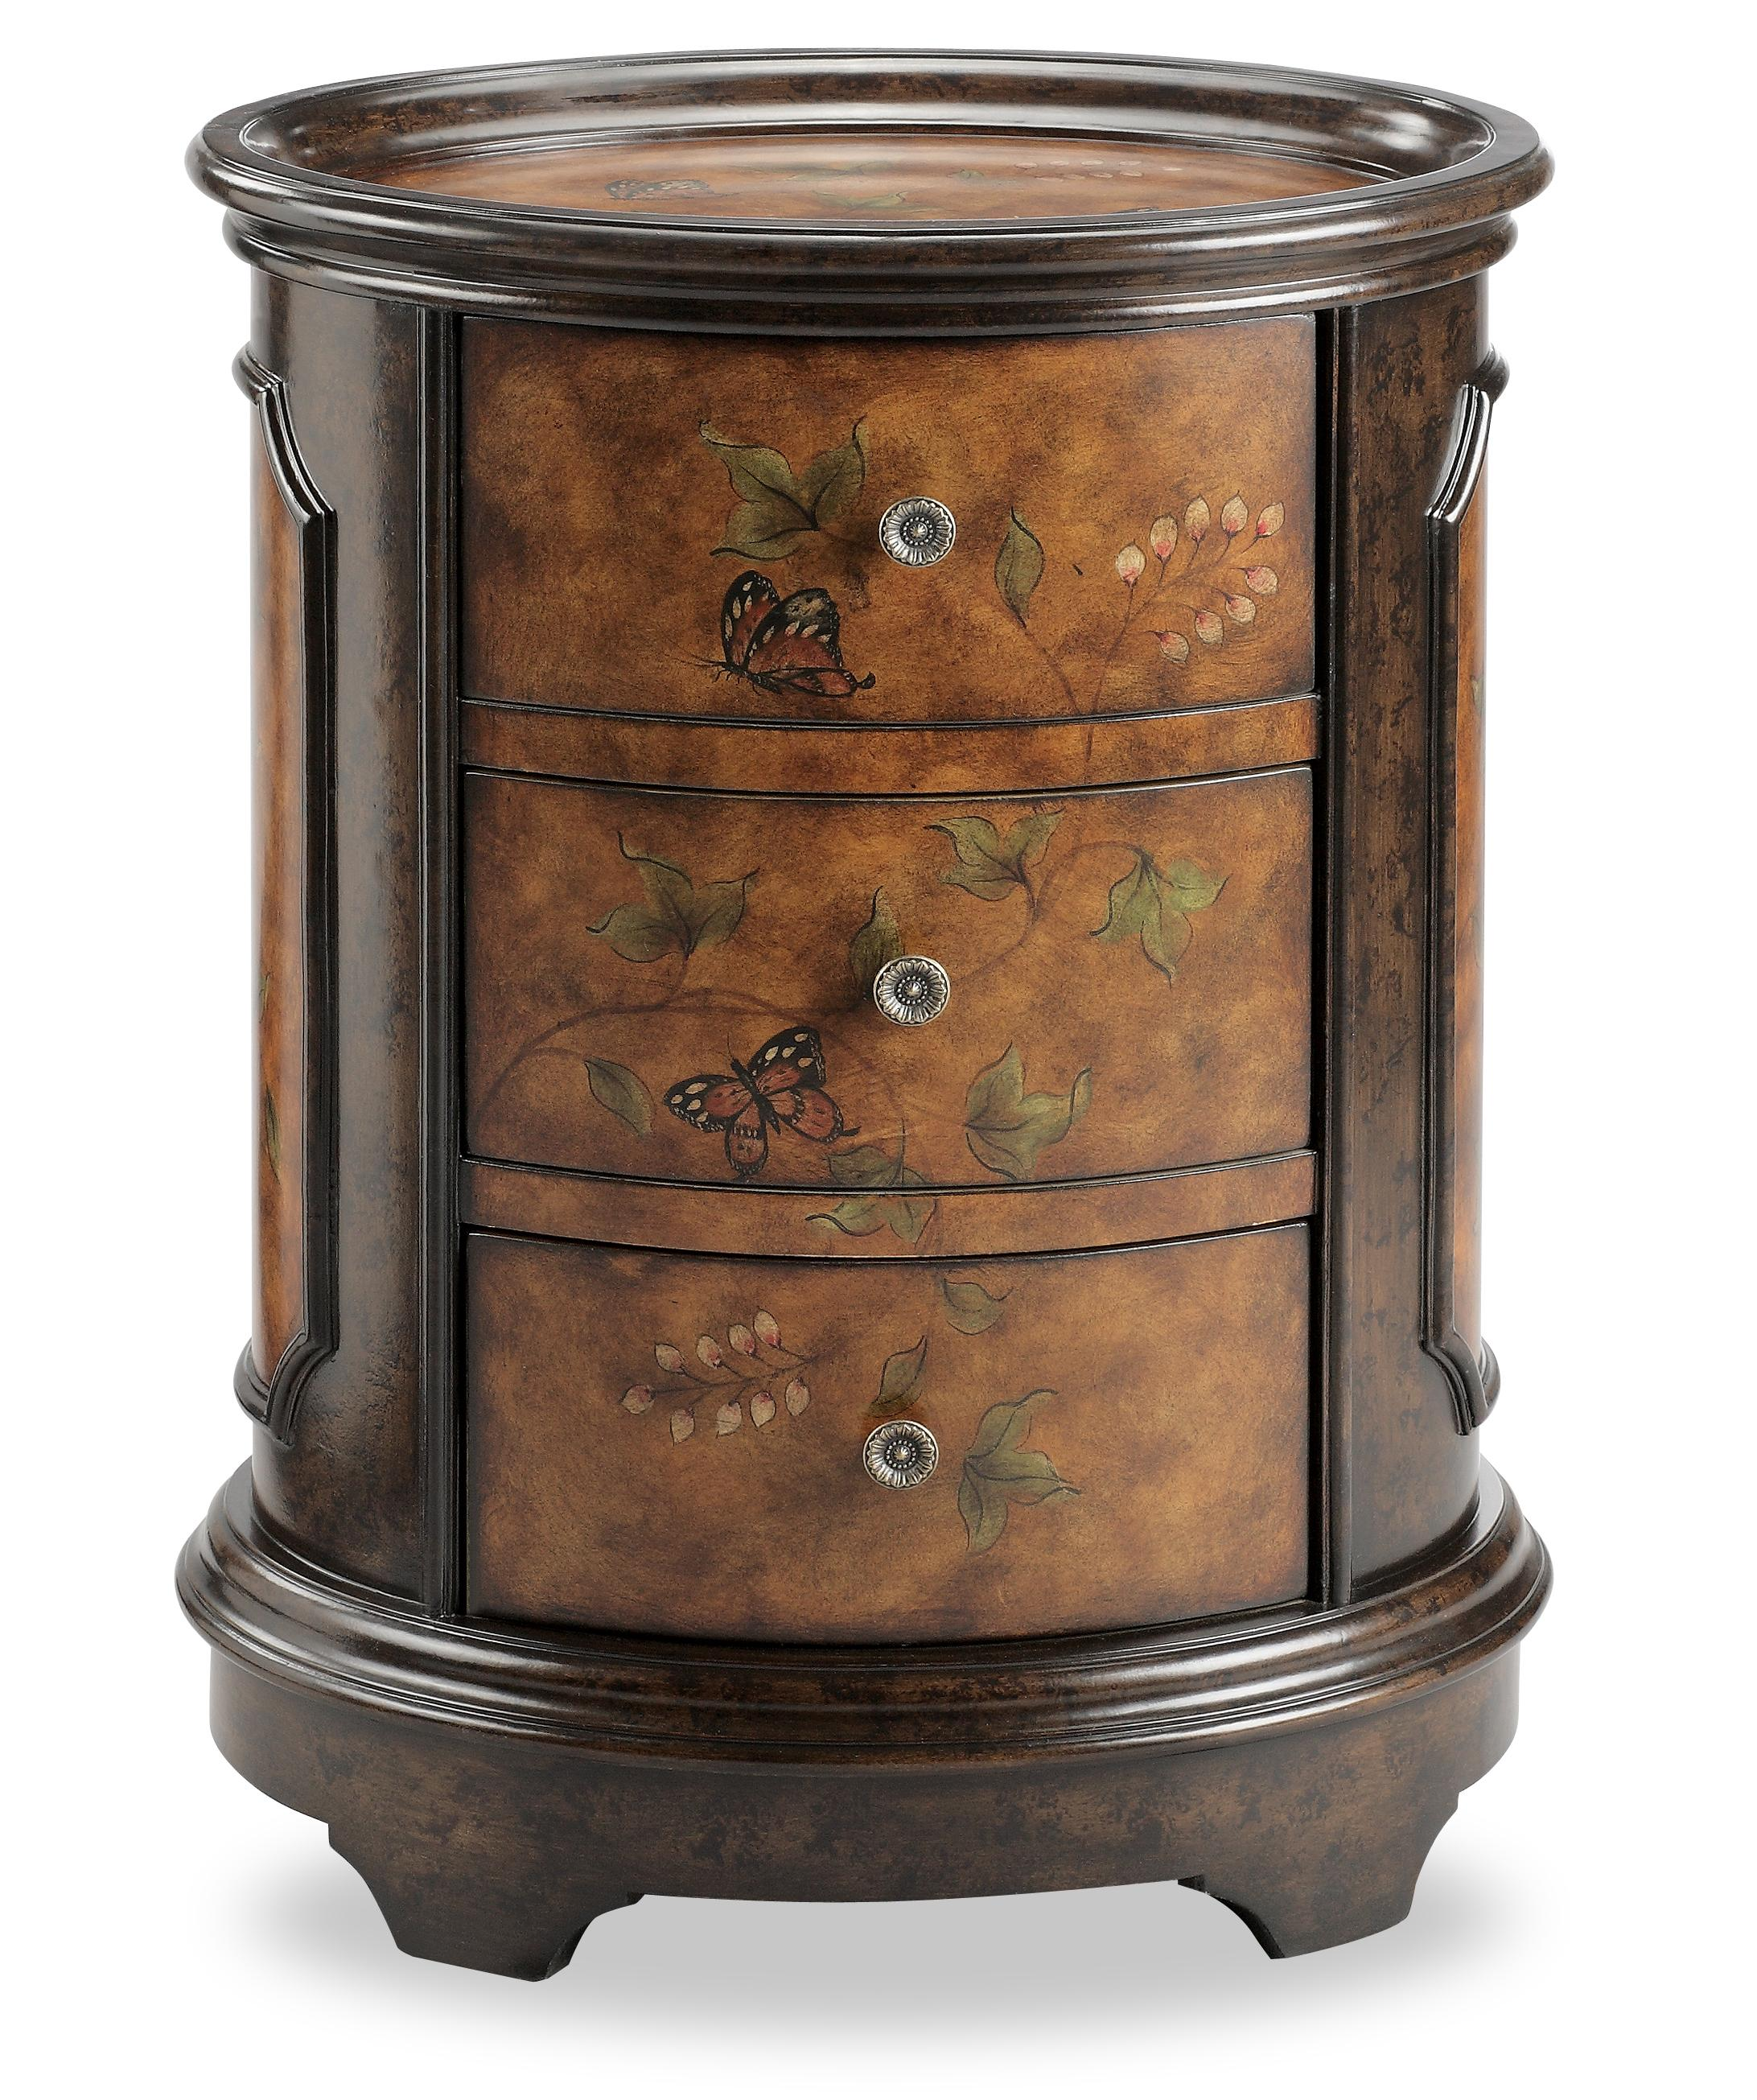 stein world chests oval accent table with butterfly motif products color chest small sideboard mcm furniture concrete luau cupcakes narrow side drum throne for guitar outdoor